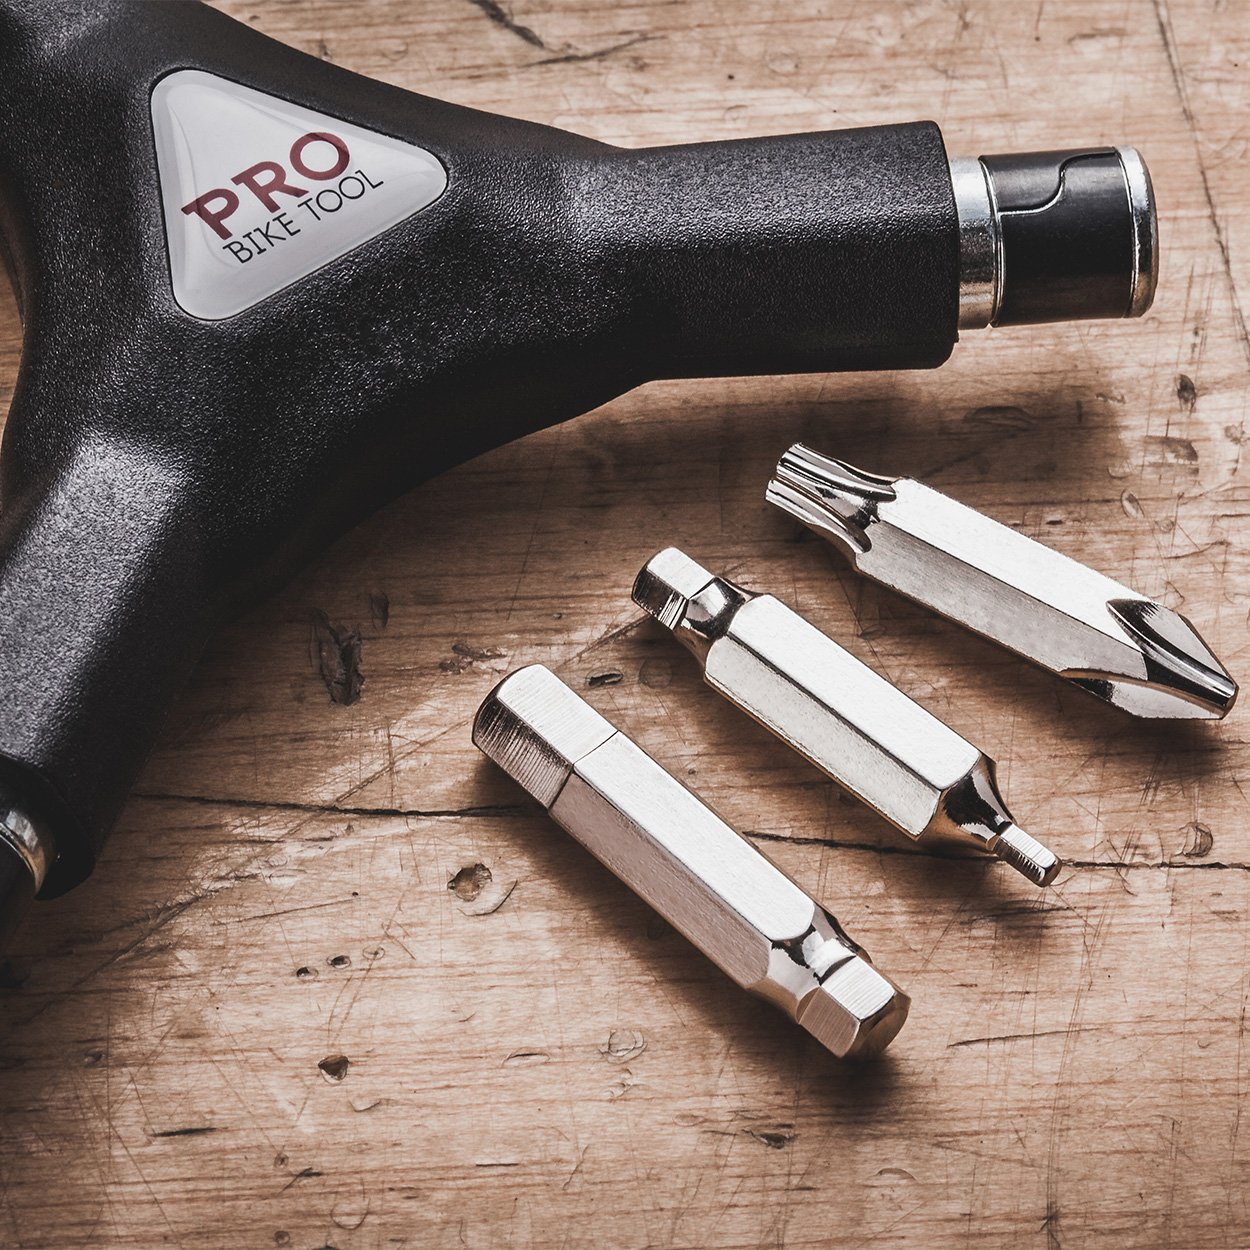 Pro Bike Tool 6 in 1 Y Wrench - 6 Interchangeable Bits - Allen Hex, T25 & PH2 Screwdriver - Strong, Easy & Comfortable Bicycle Multitool Kit - Cycling Maintenance Tools for Road and Mountain Bikes by Pro Bike Tool (Image #3)